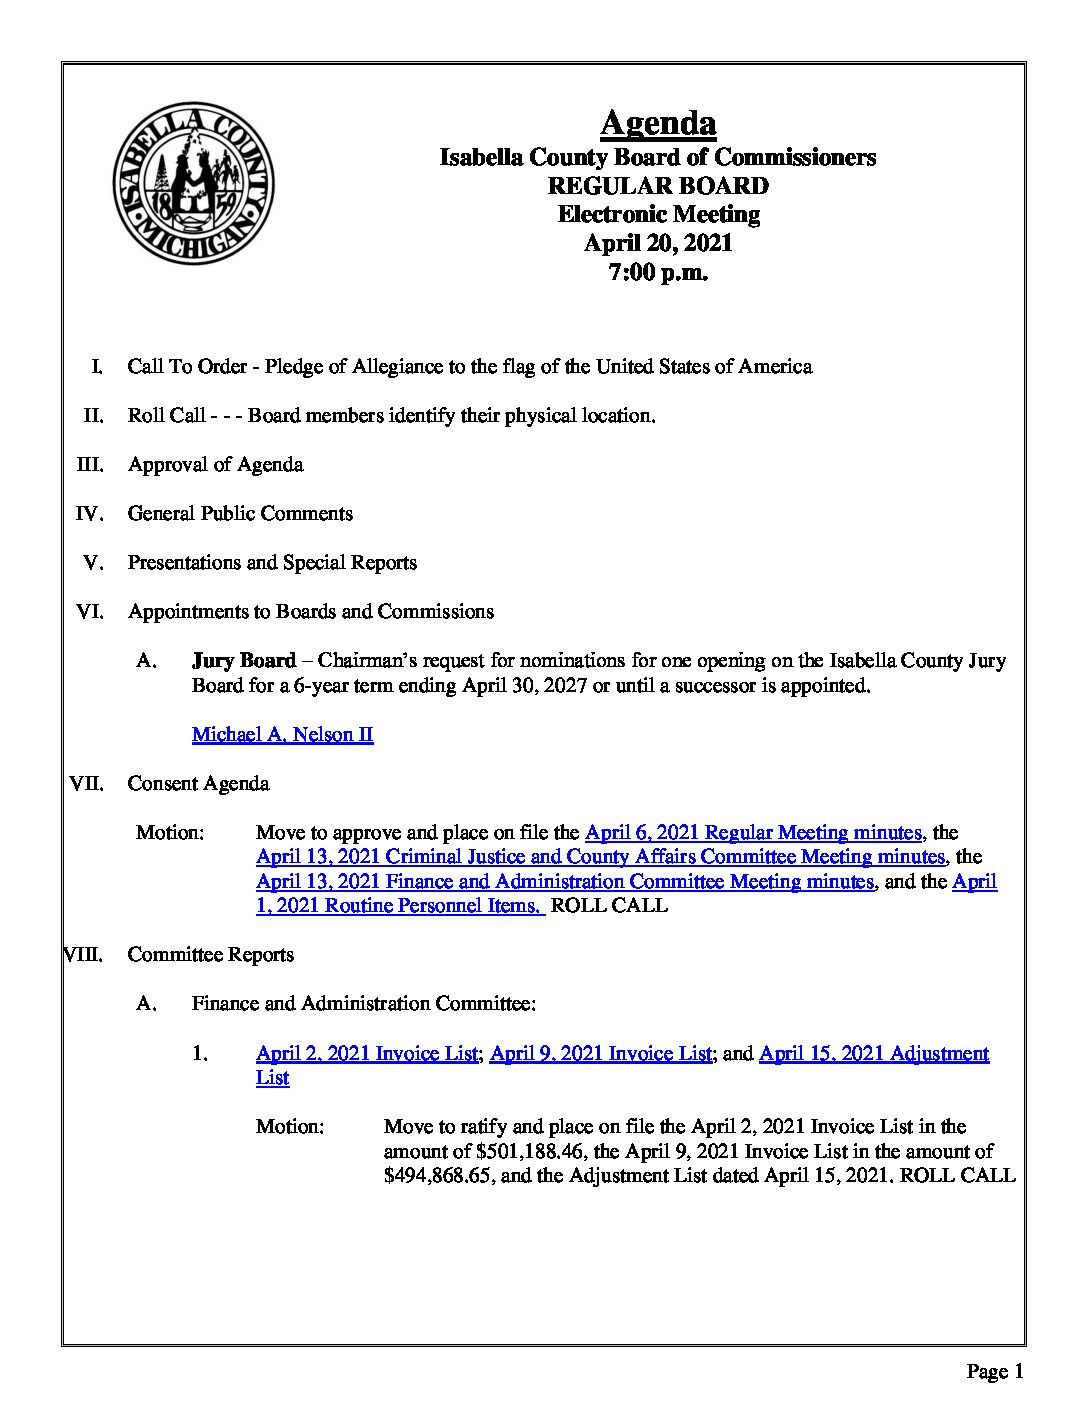 preview image of first page April 20, 2021 Agenda